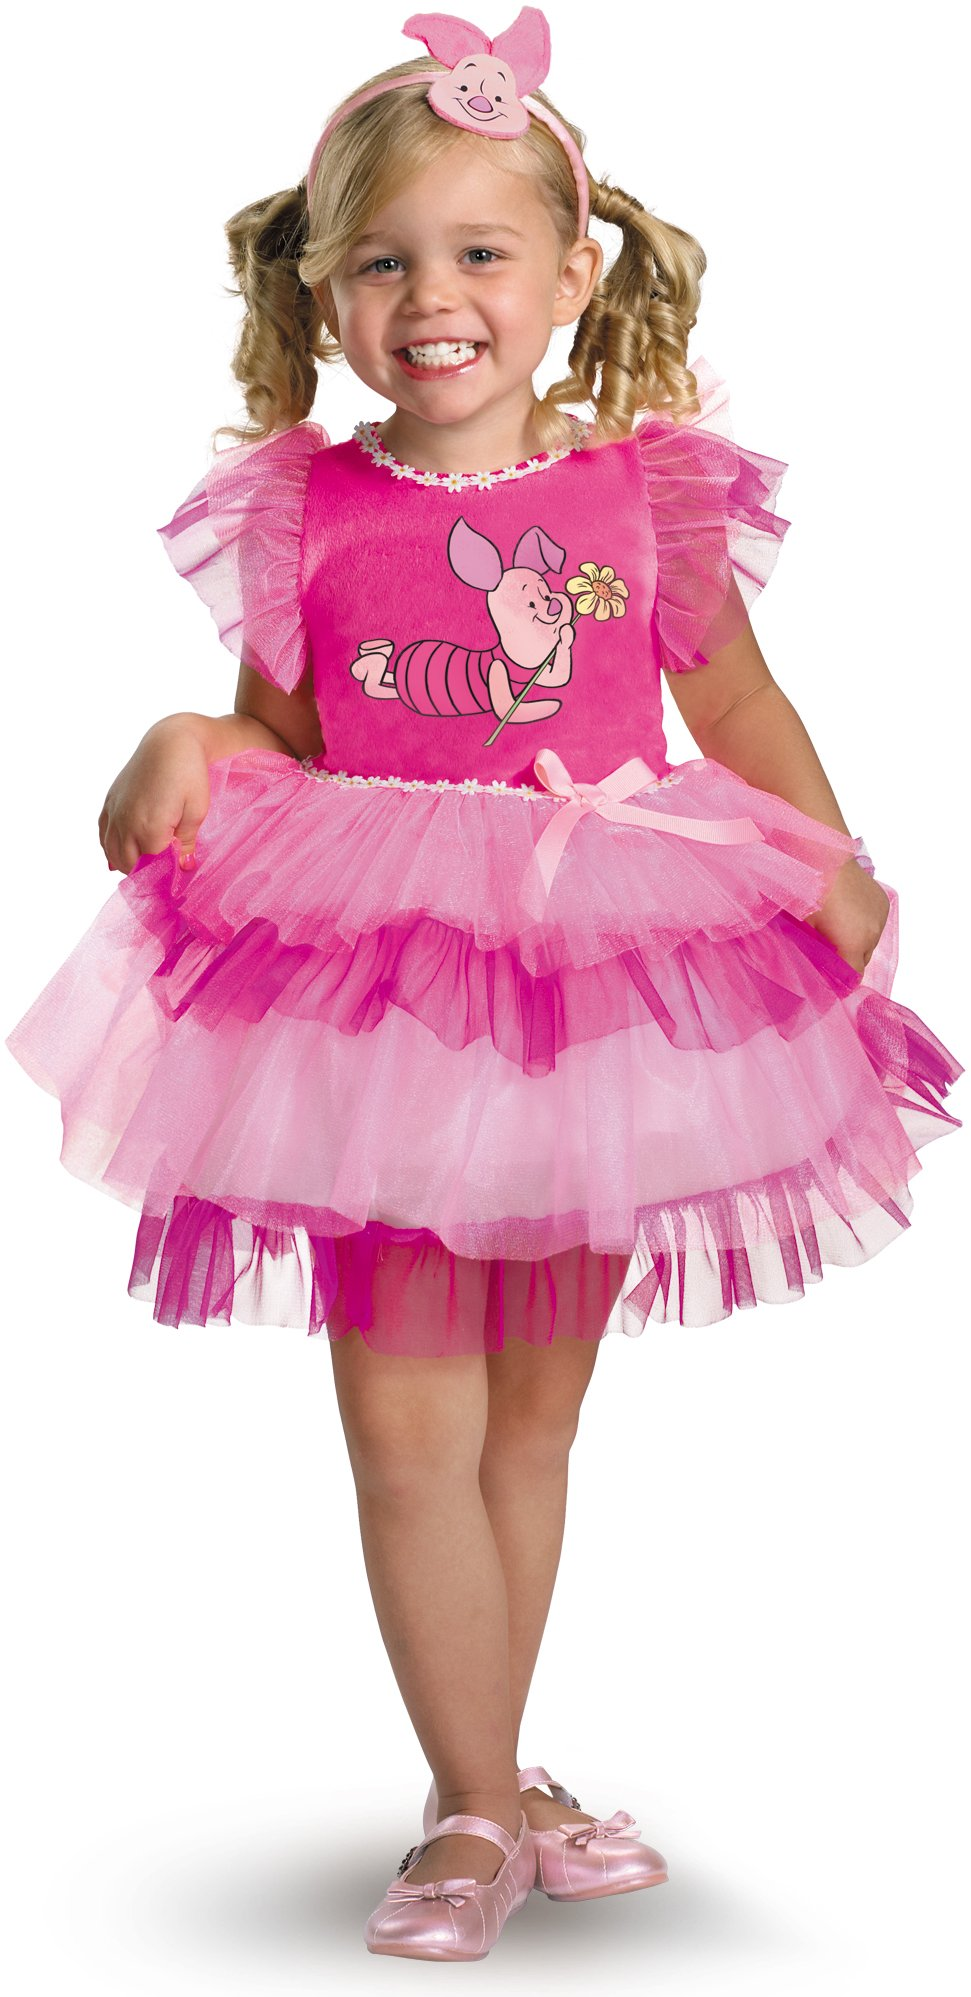 Winnie the Pooh - Frilly Piglet Infant Costume